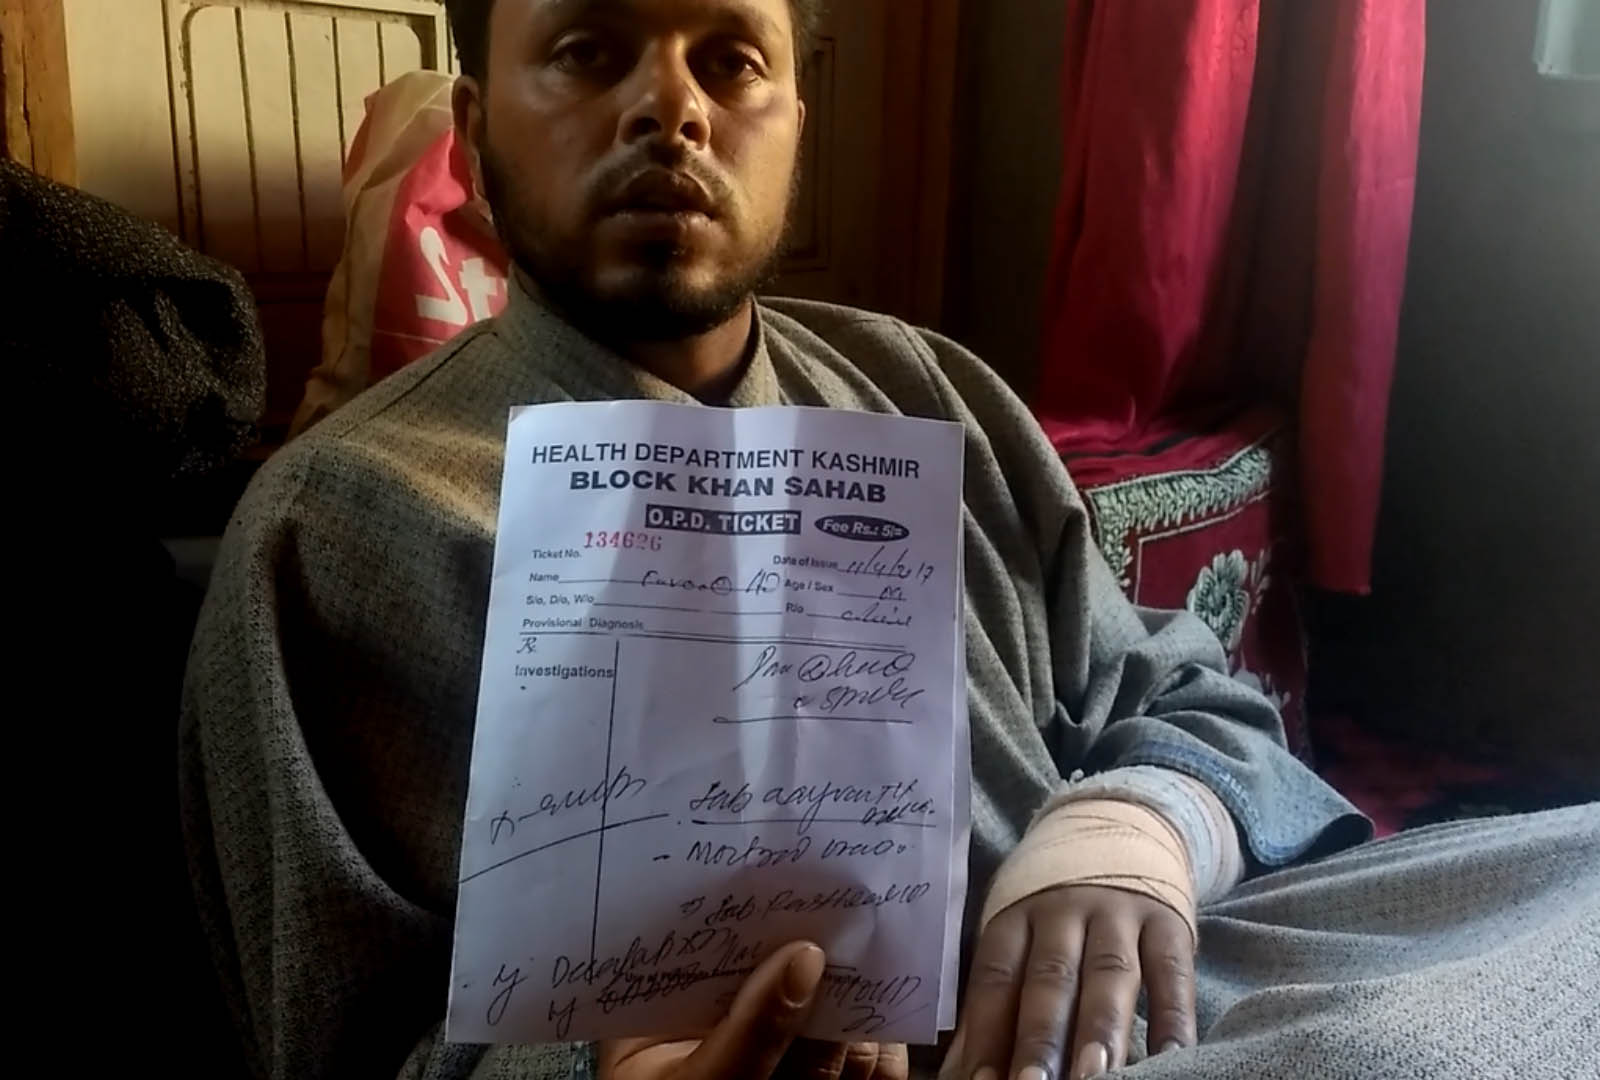 Farooq Dar displays his medical report. Credit: Rayan Naqash